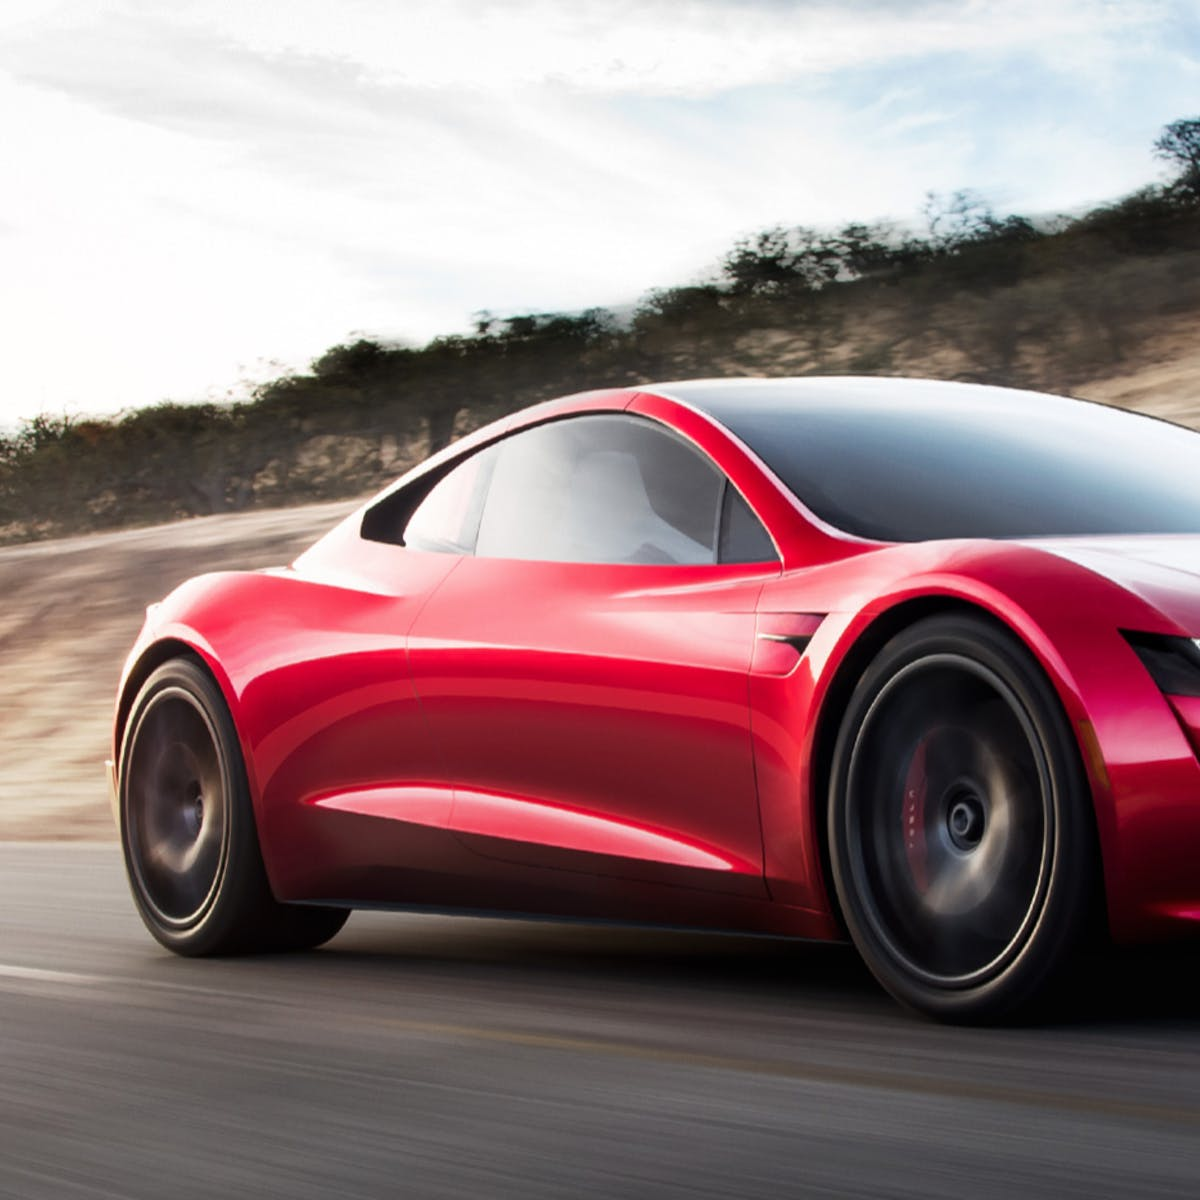 Tesla's next-gen Roadster is 'evolving' into 'the ultimate vehicle'